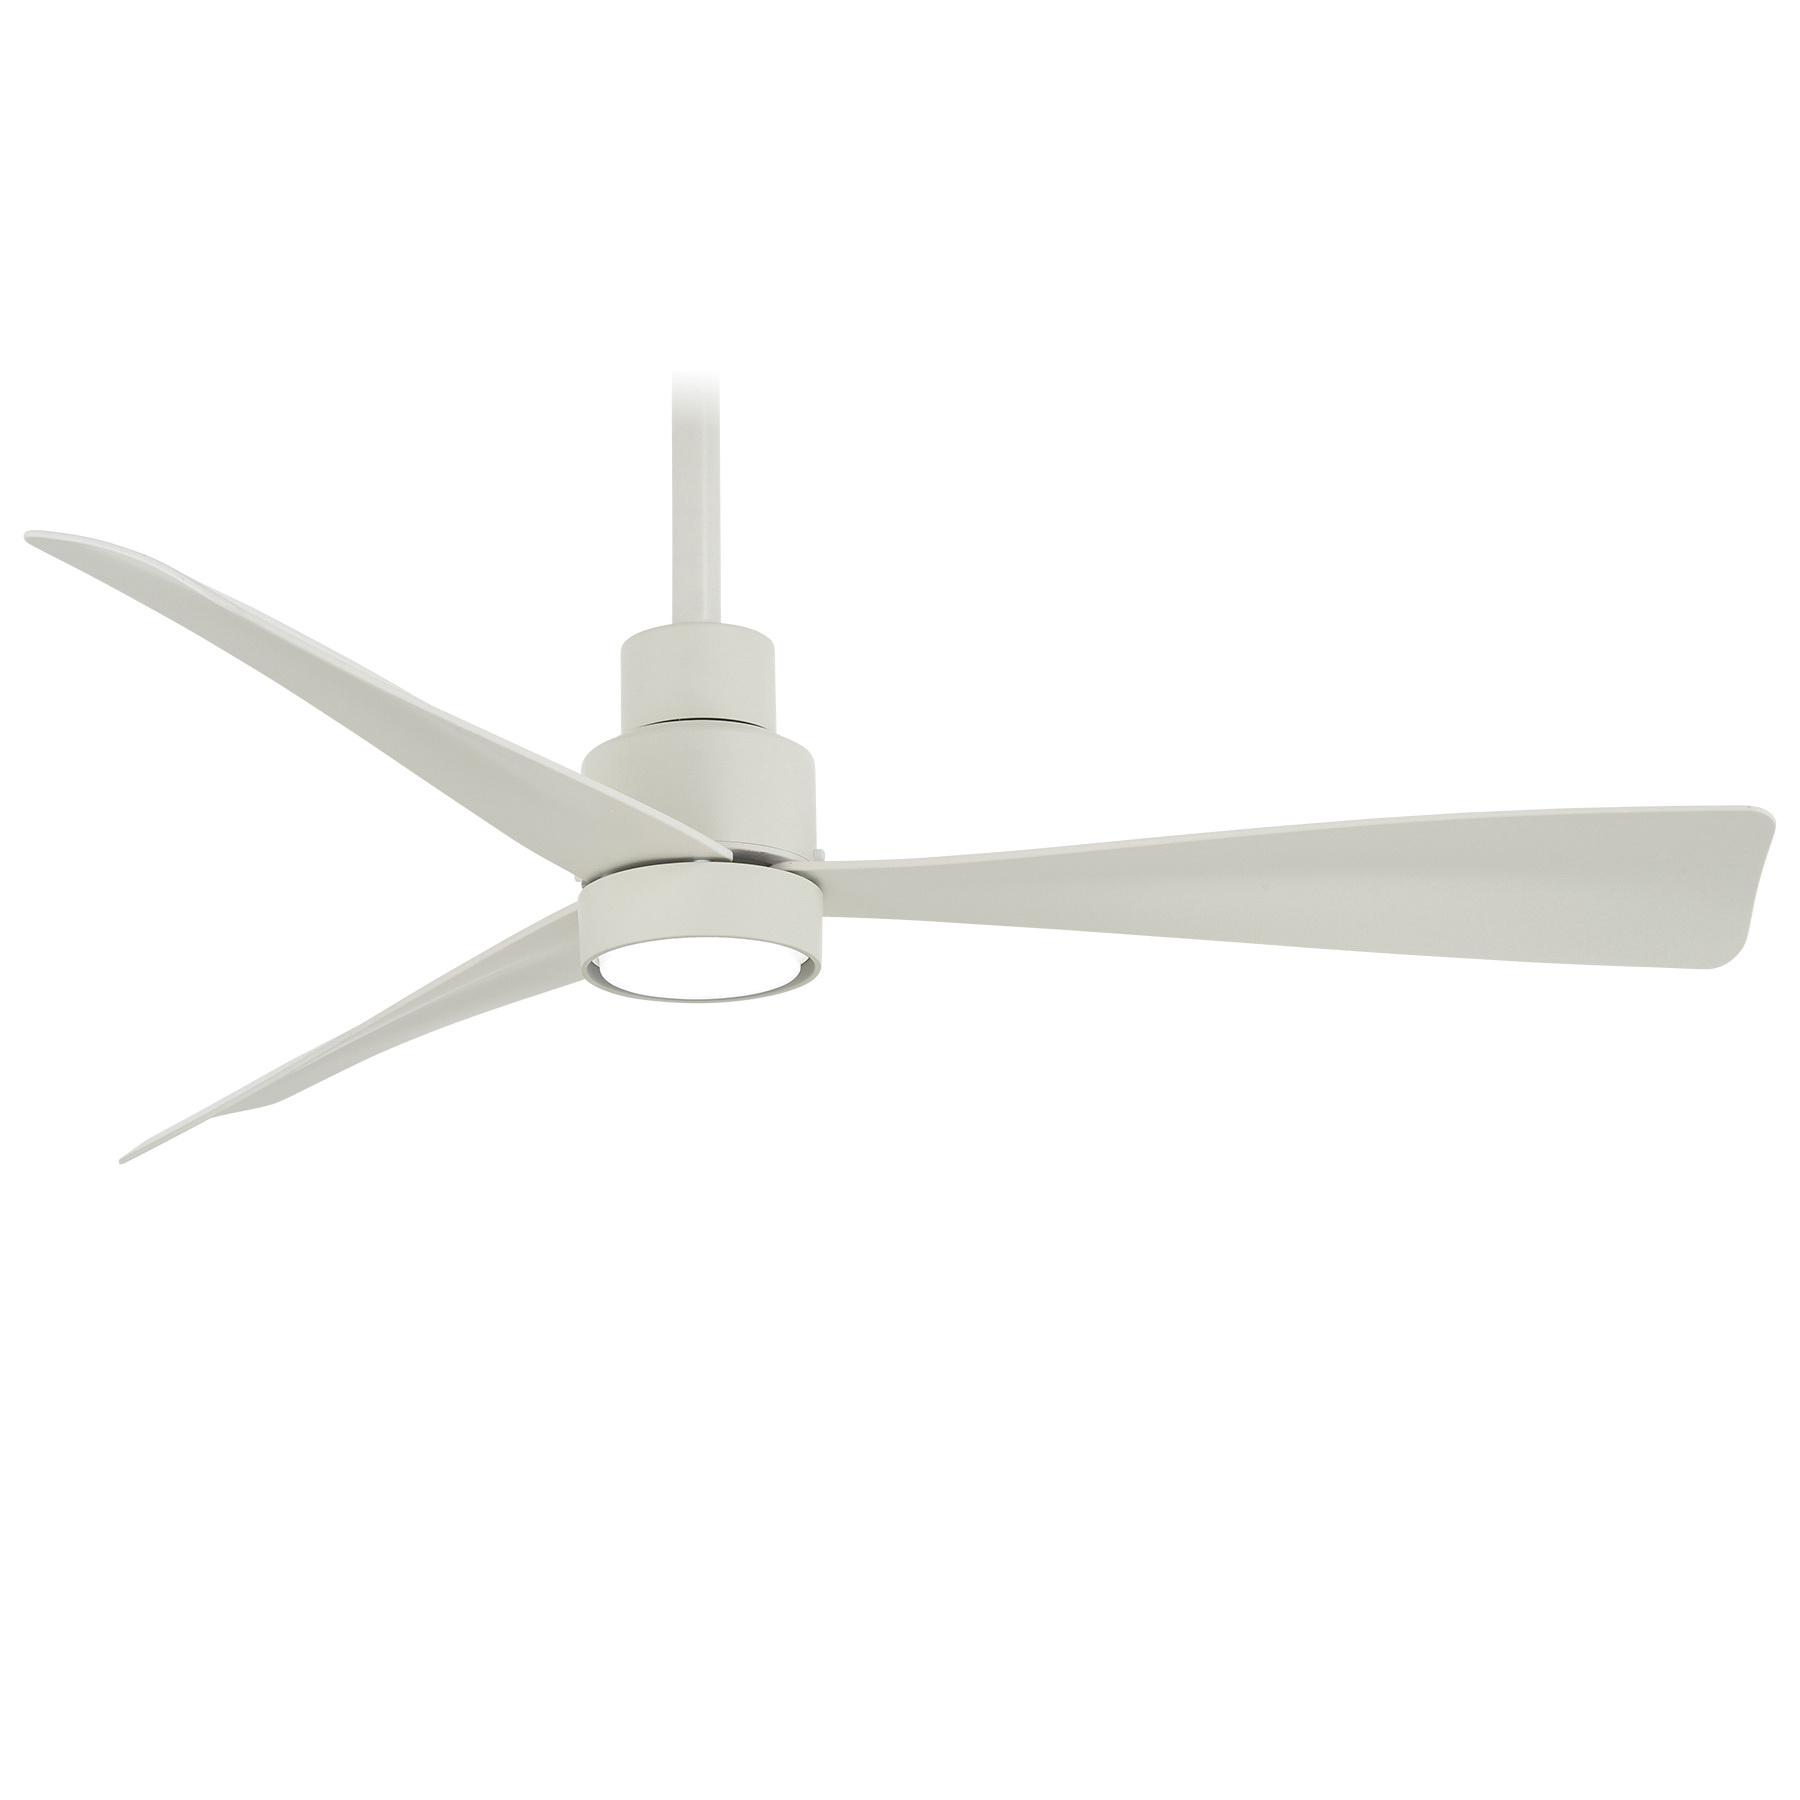 Minka Aire F786 Whf Transitional Ceiling Fan With Light 44 Inch 3 Blade 6 Speed Flat White Simple Ceiling Fan With Light Air Circulators Hvac